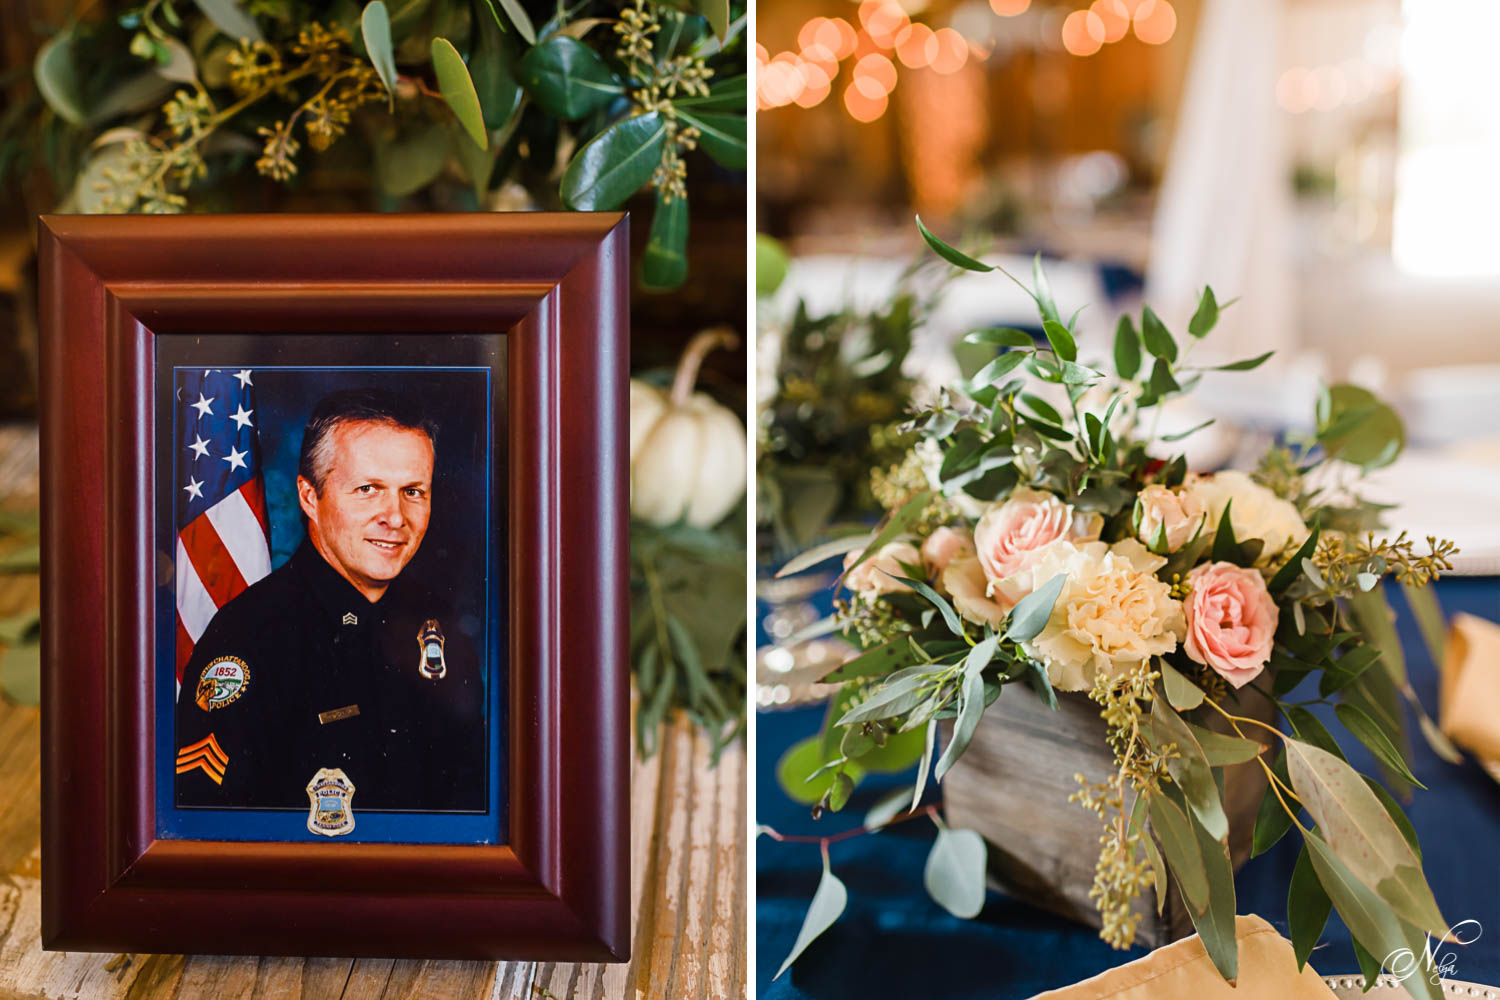 framed photo of Chattanooga officer. And floral centerpiece in wooden box